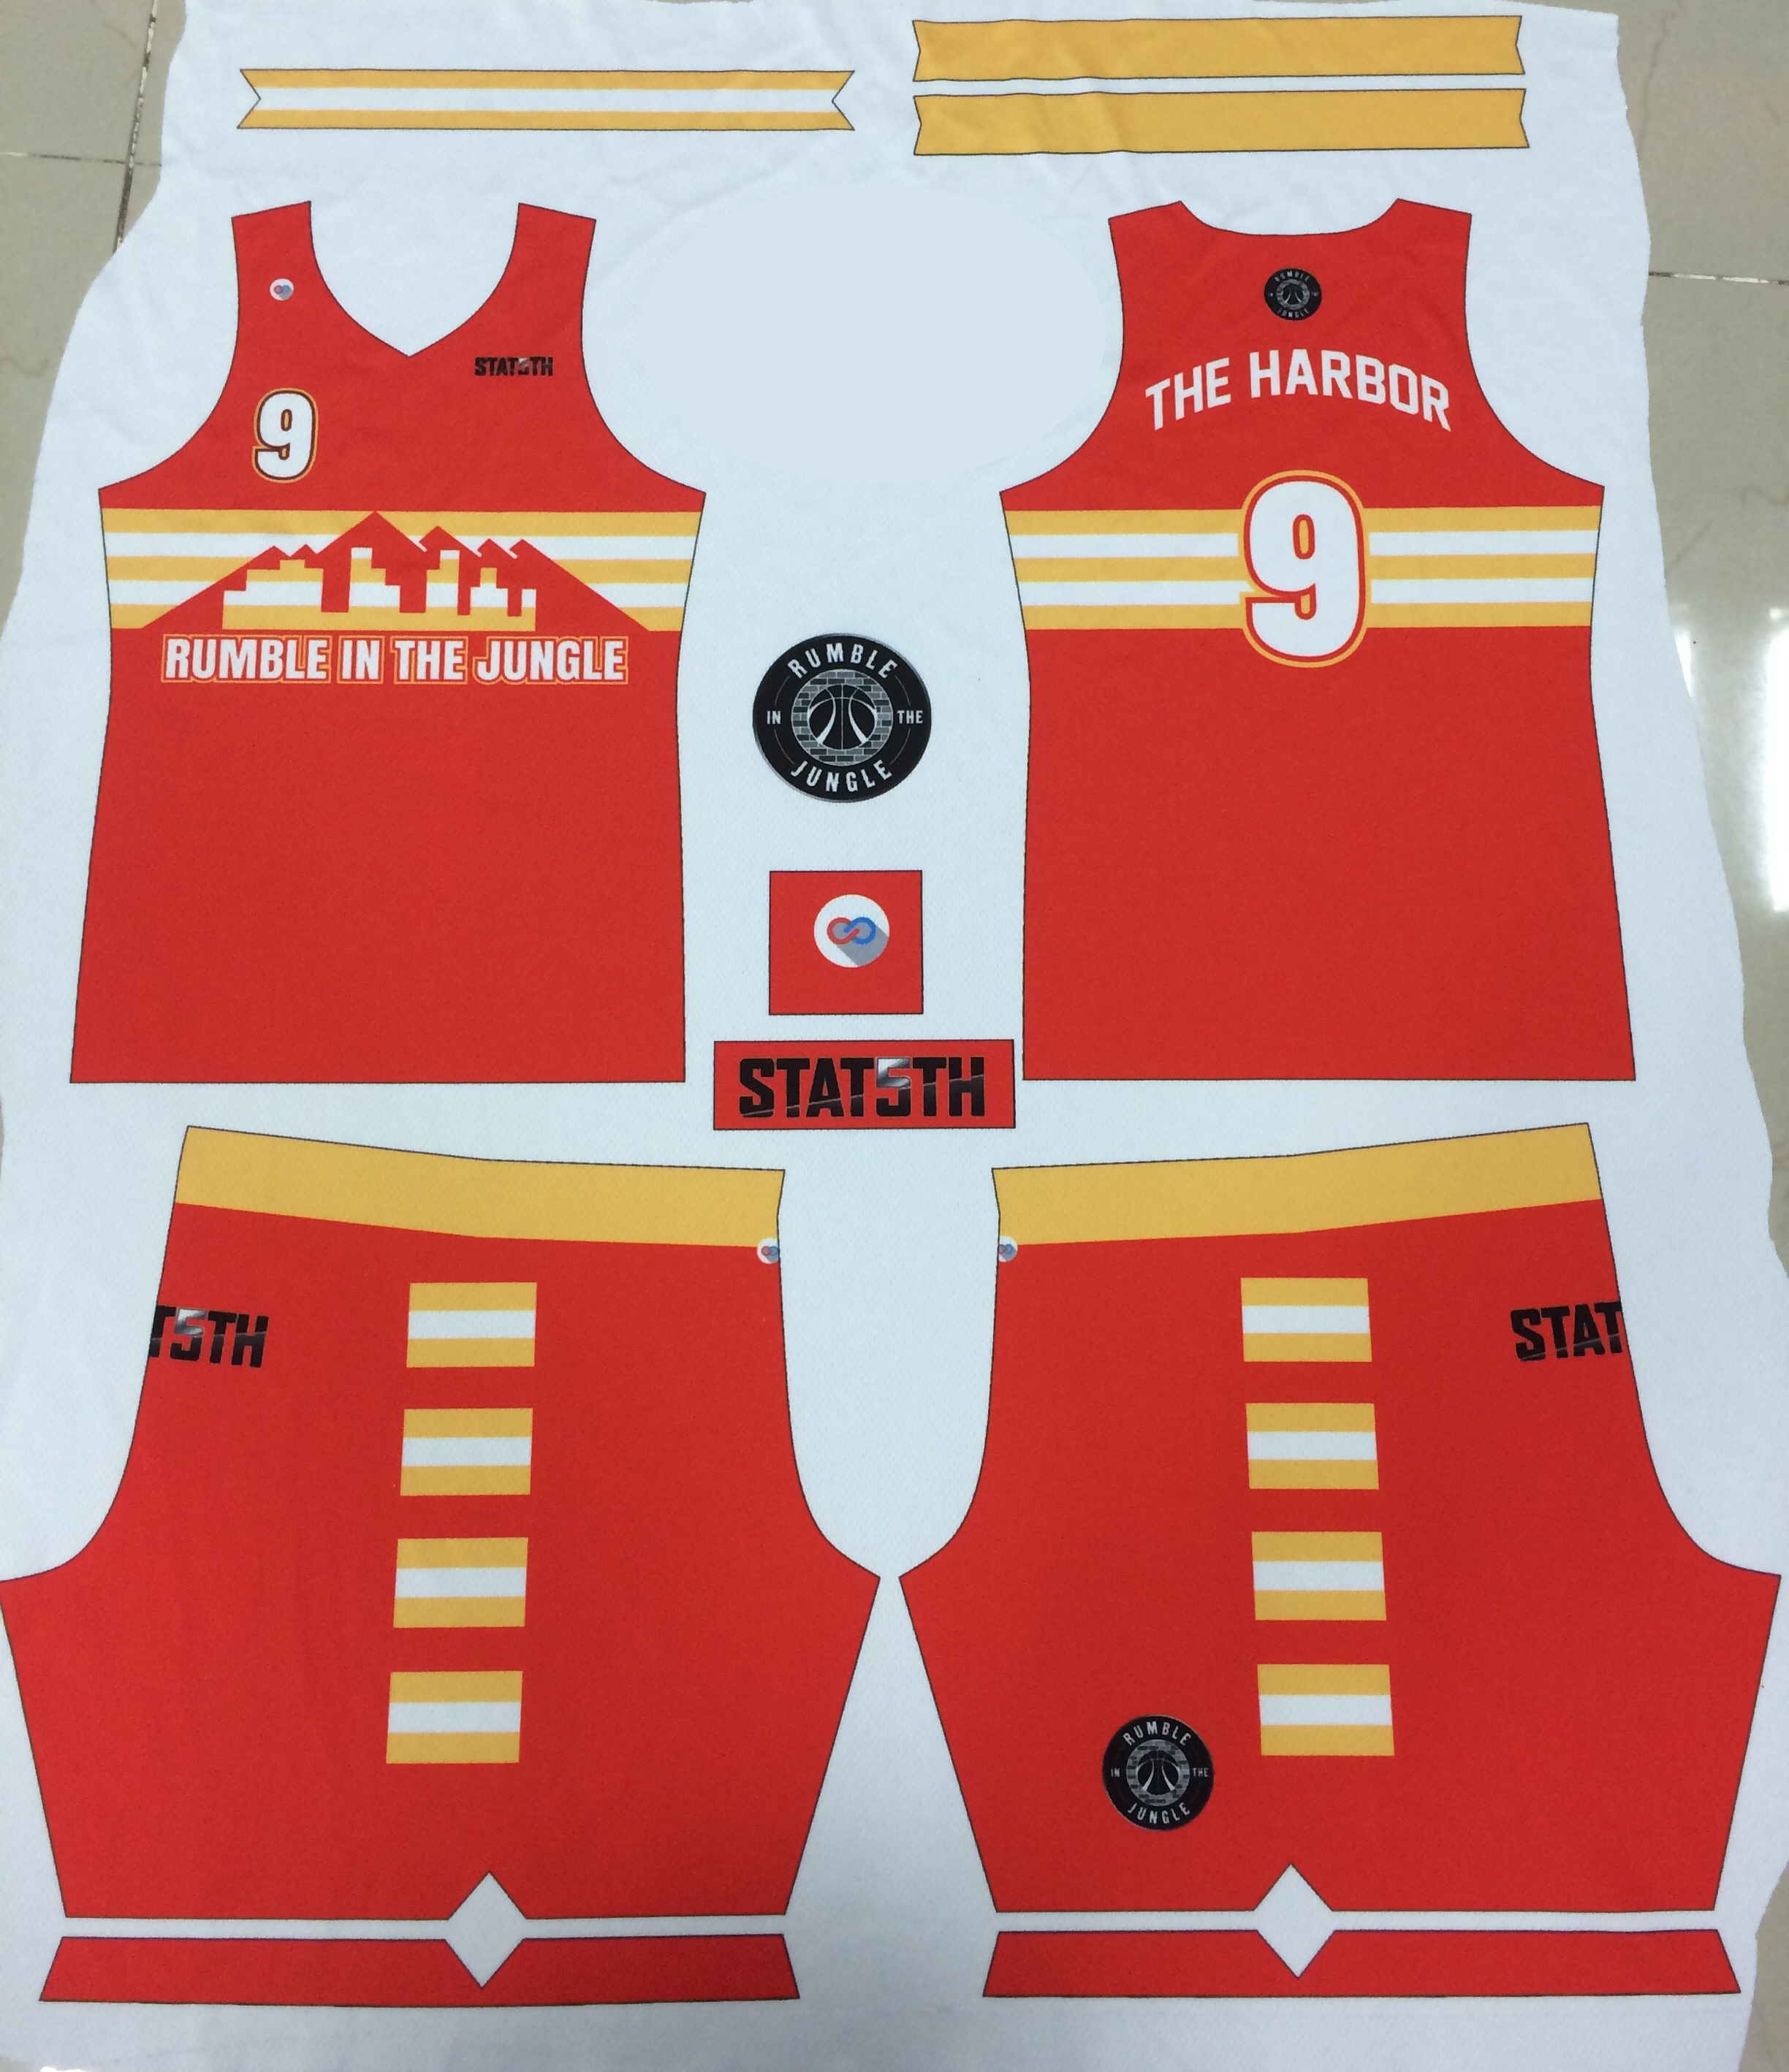 custom uniform printed by sublimation on polyester fabric